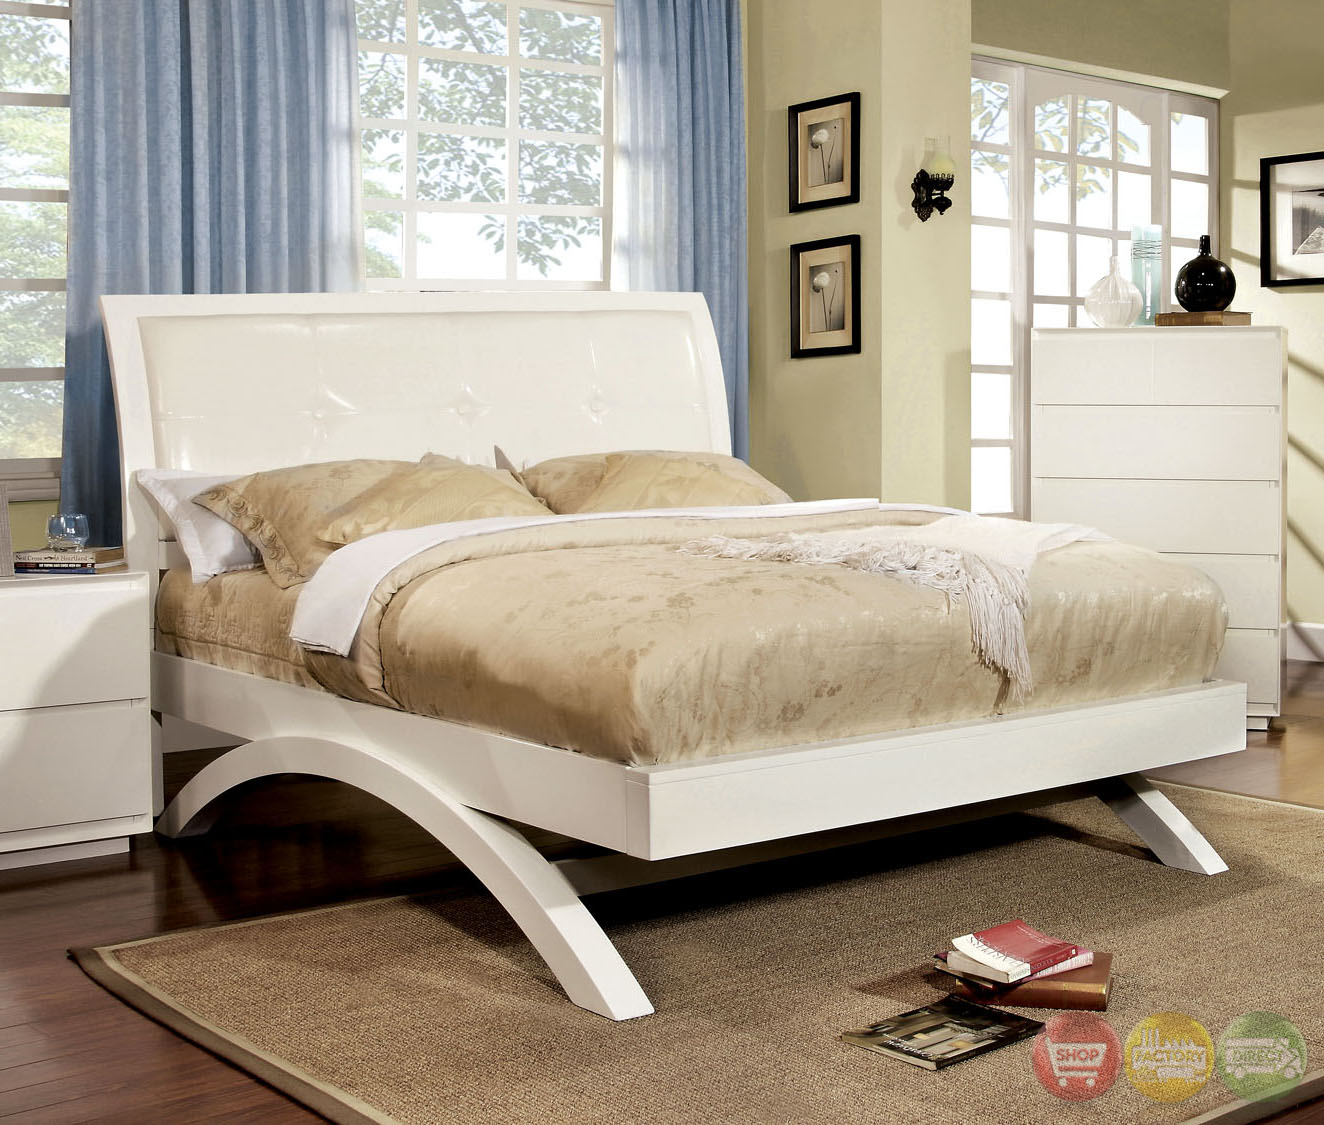 delano contemporary white platform bedroom set with padded leatherette headboard cm7824wh. Black Bedroom Furniture Sets. Home Design Ideas